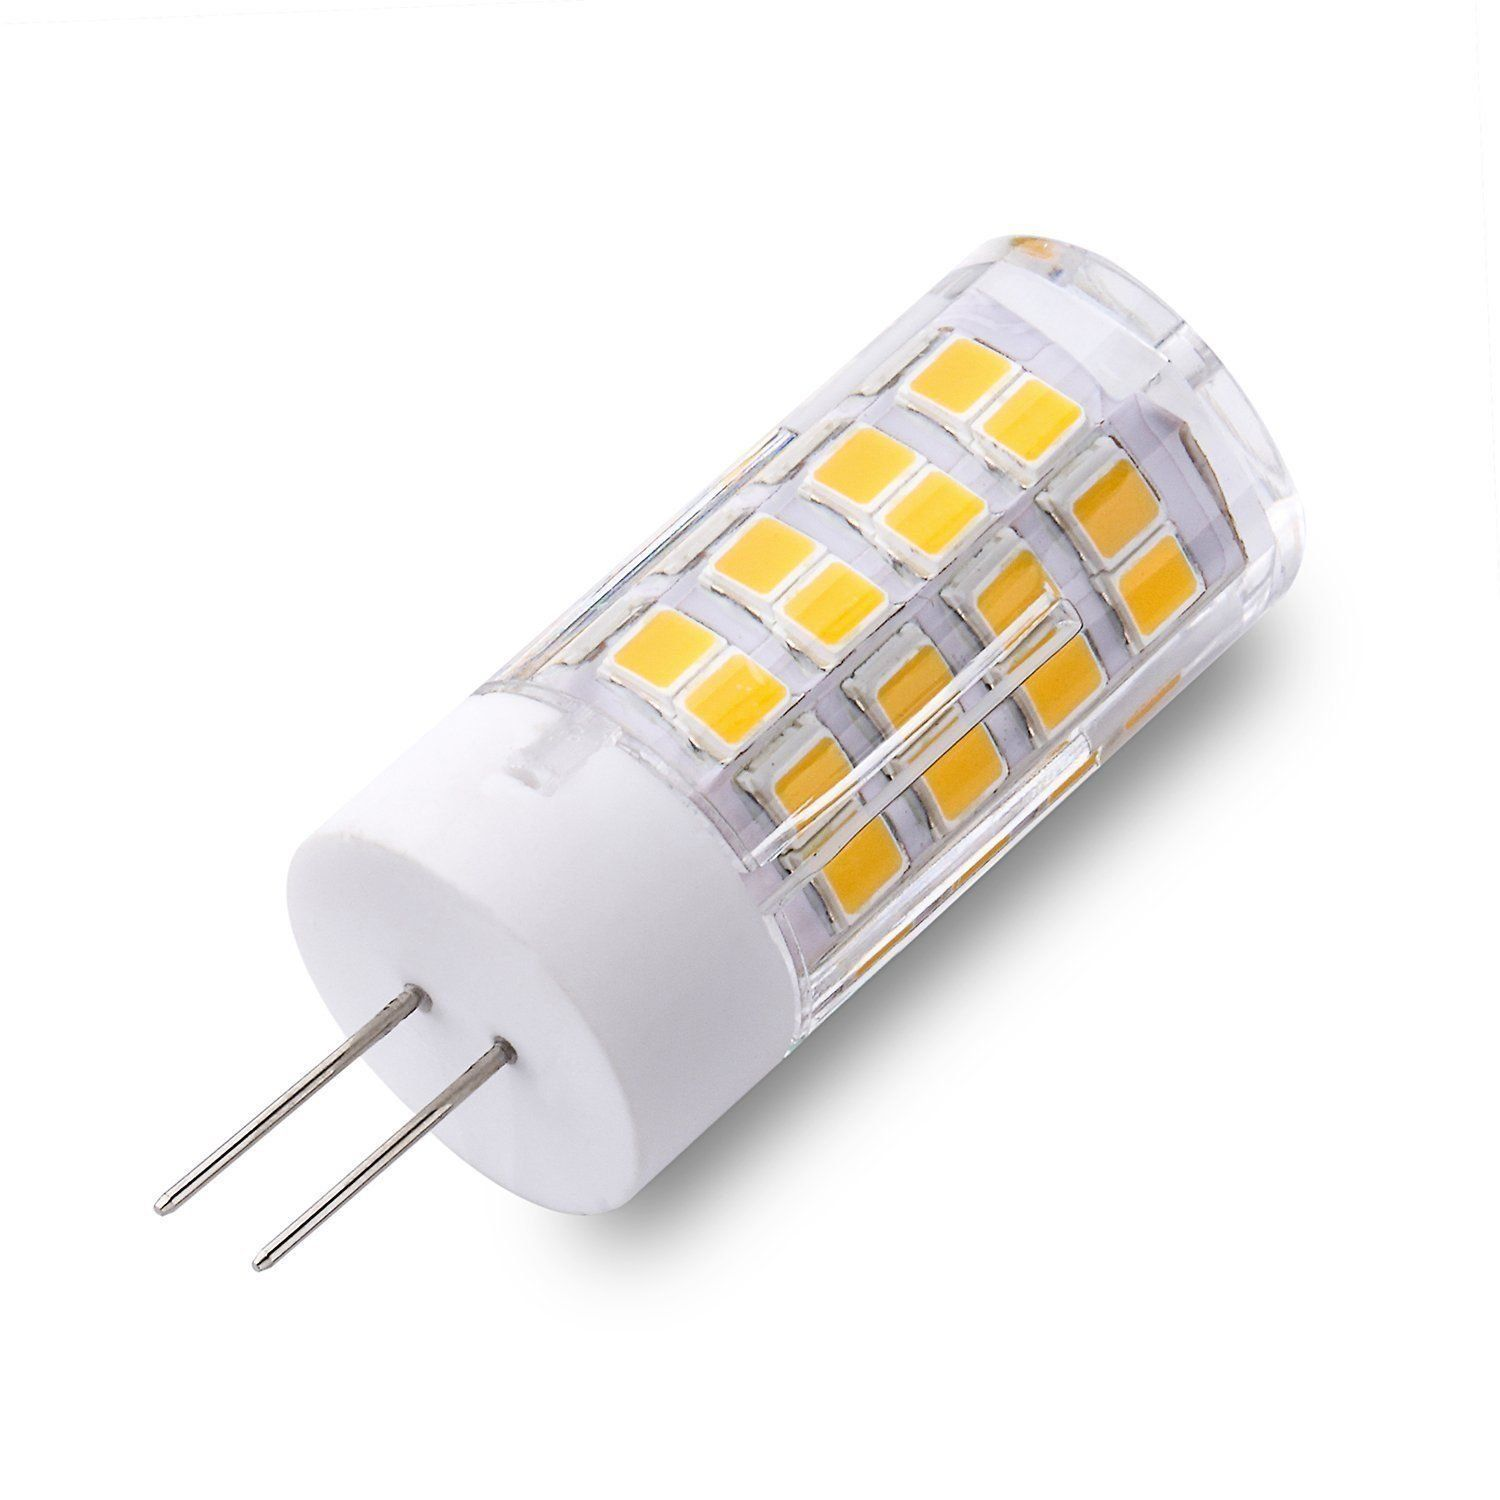 5w G4 Led Light Bulb 380lm 51 Smd 2835 Led Soft Warm White Light Nondimmable Ceramics Light High Power Energy S Energy Saving Lamp Ceramic Light Led Light Bulb